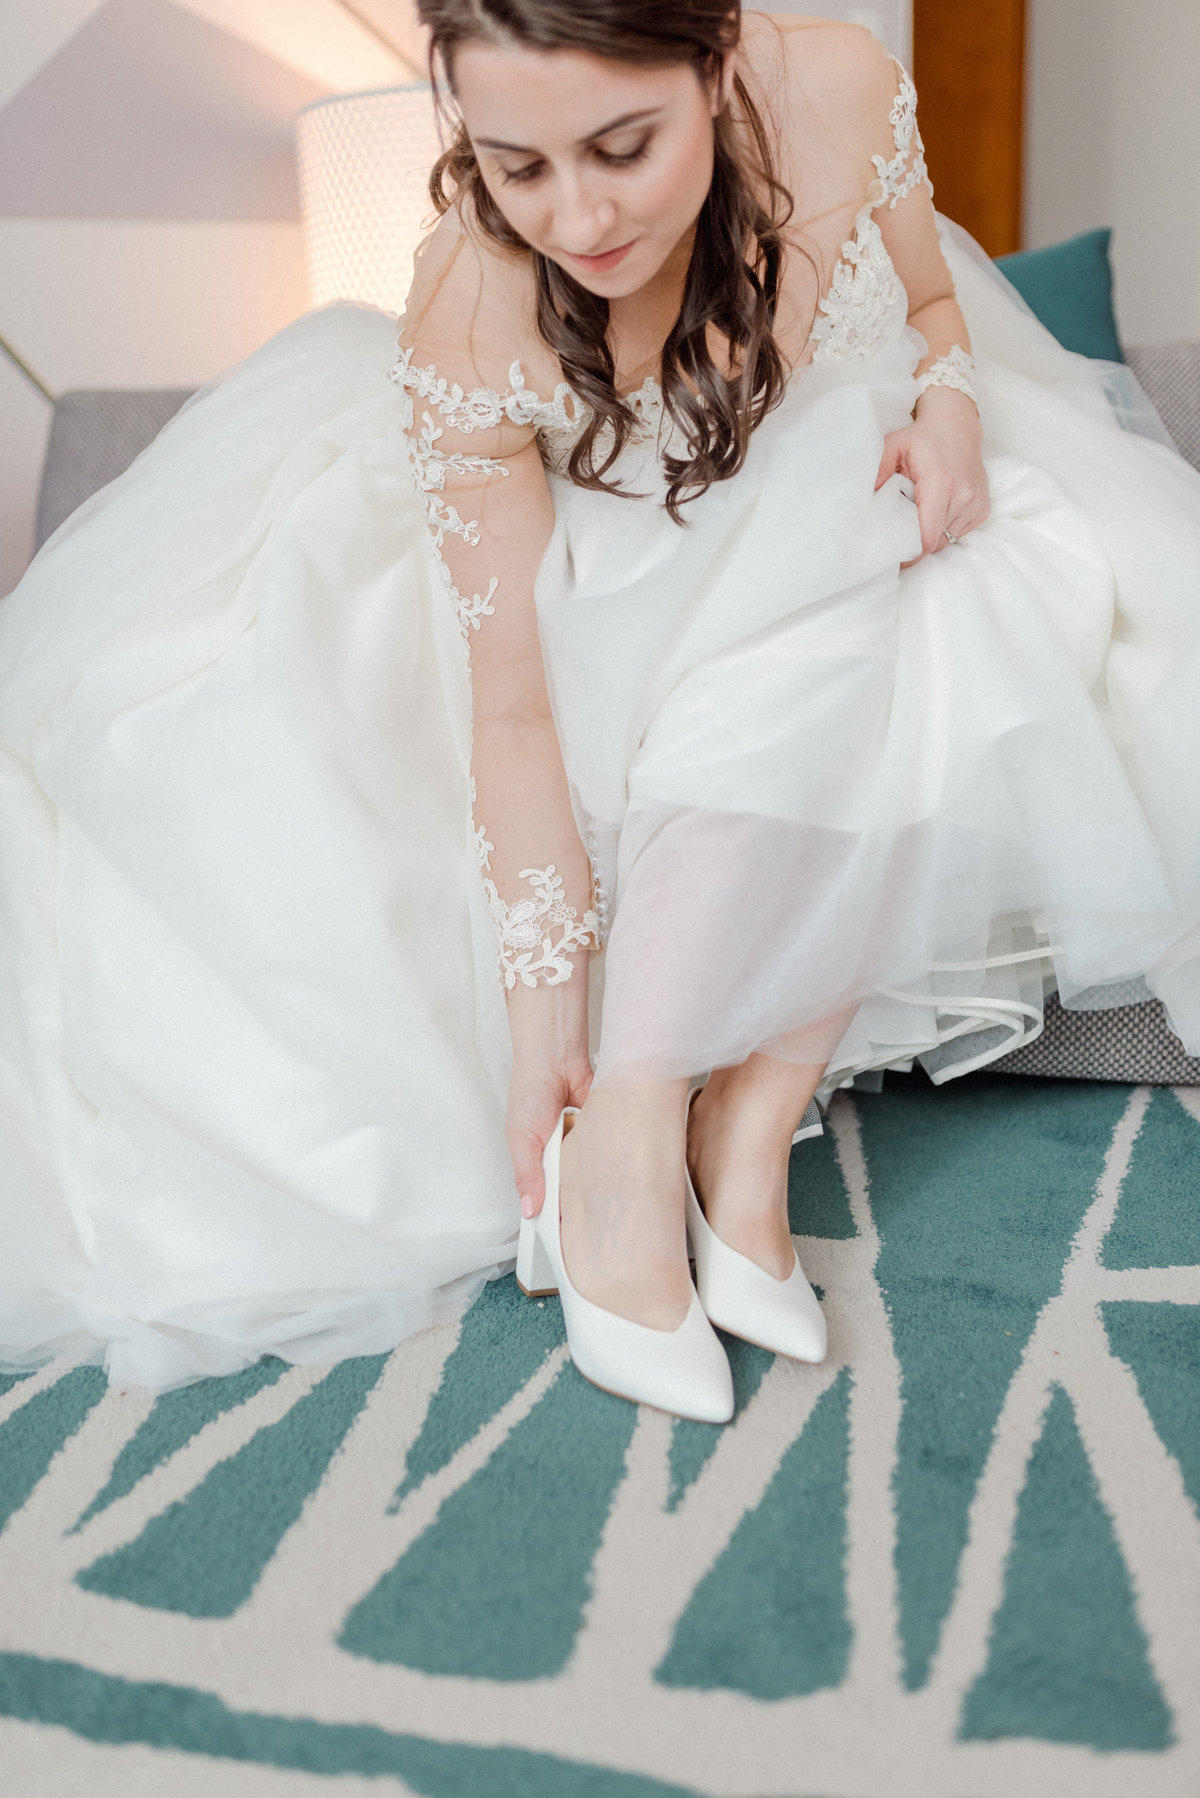 bride putting on white heals on a green carpet